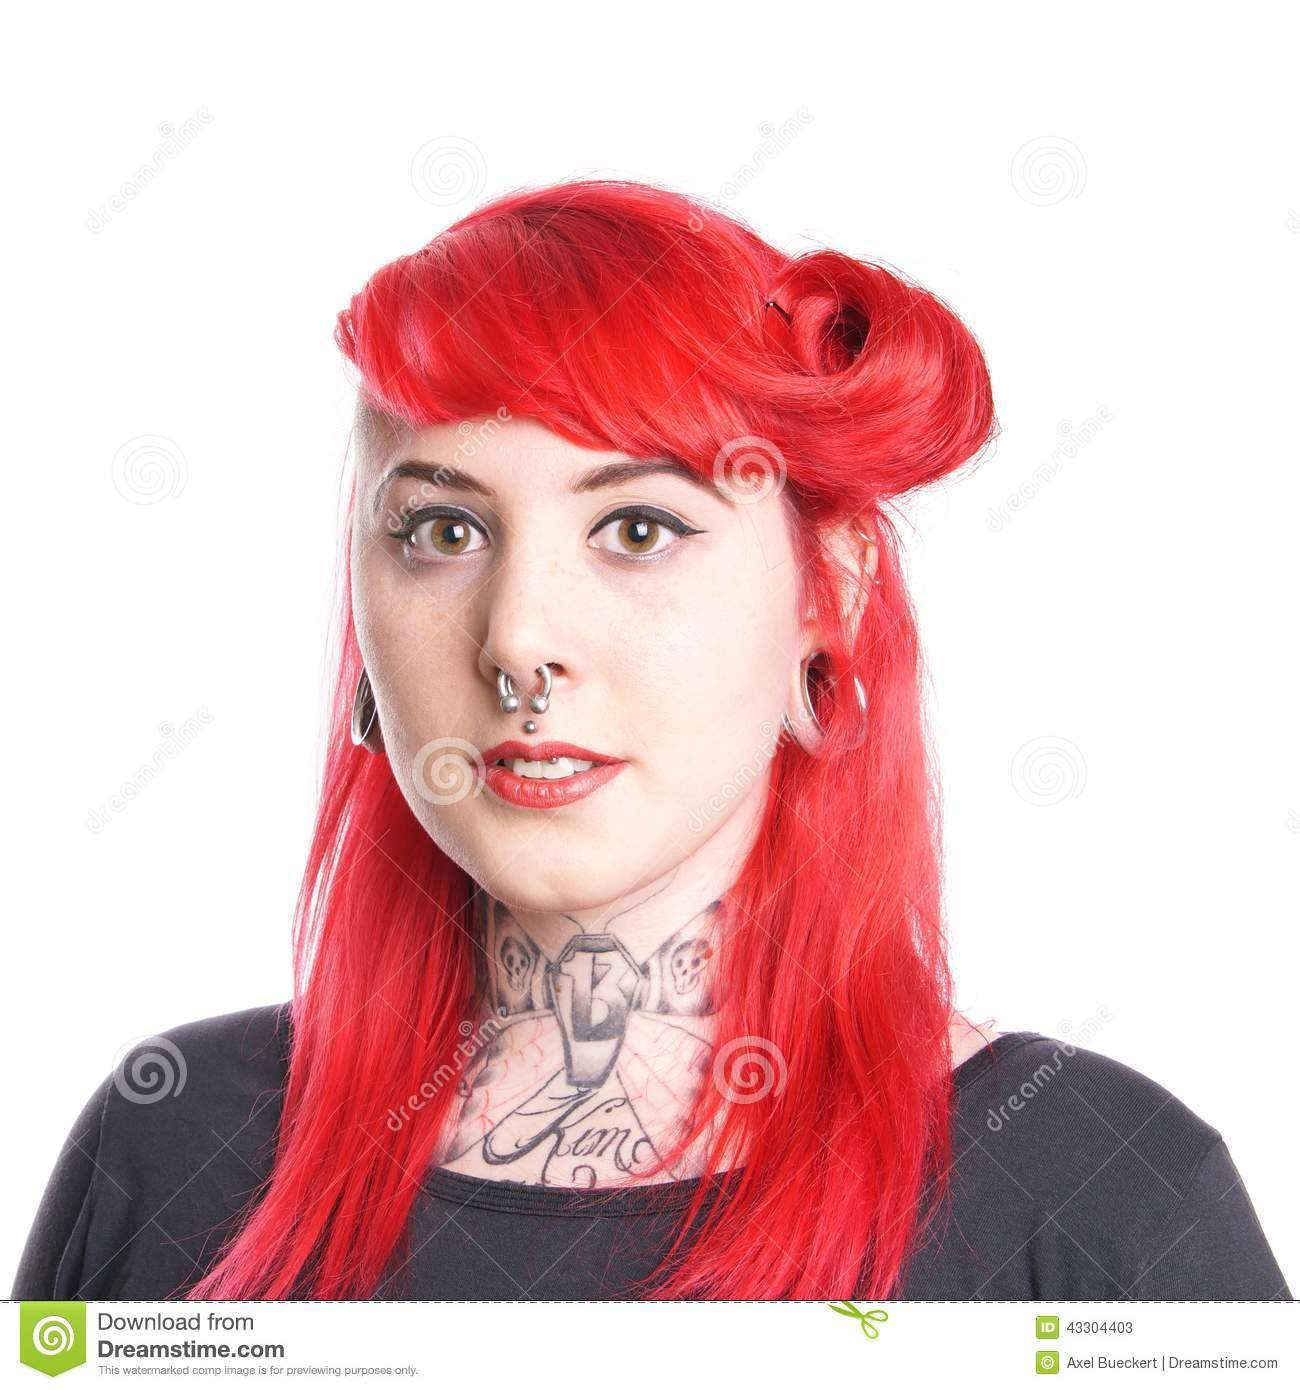 Woman with tattoos and piercings stock image image 43304403 for Woman with tattoos